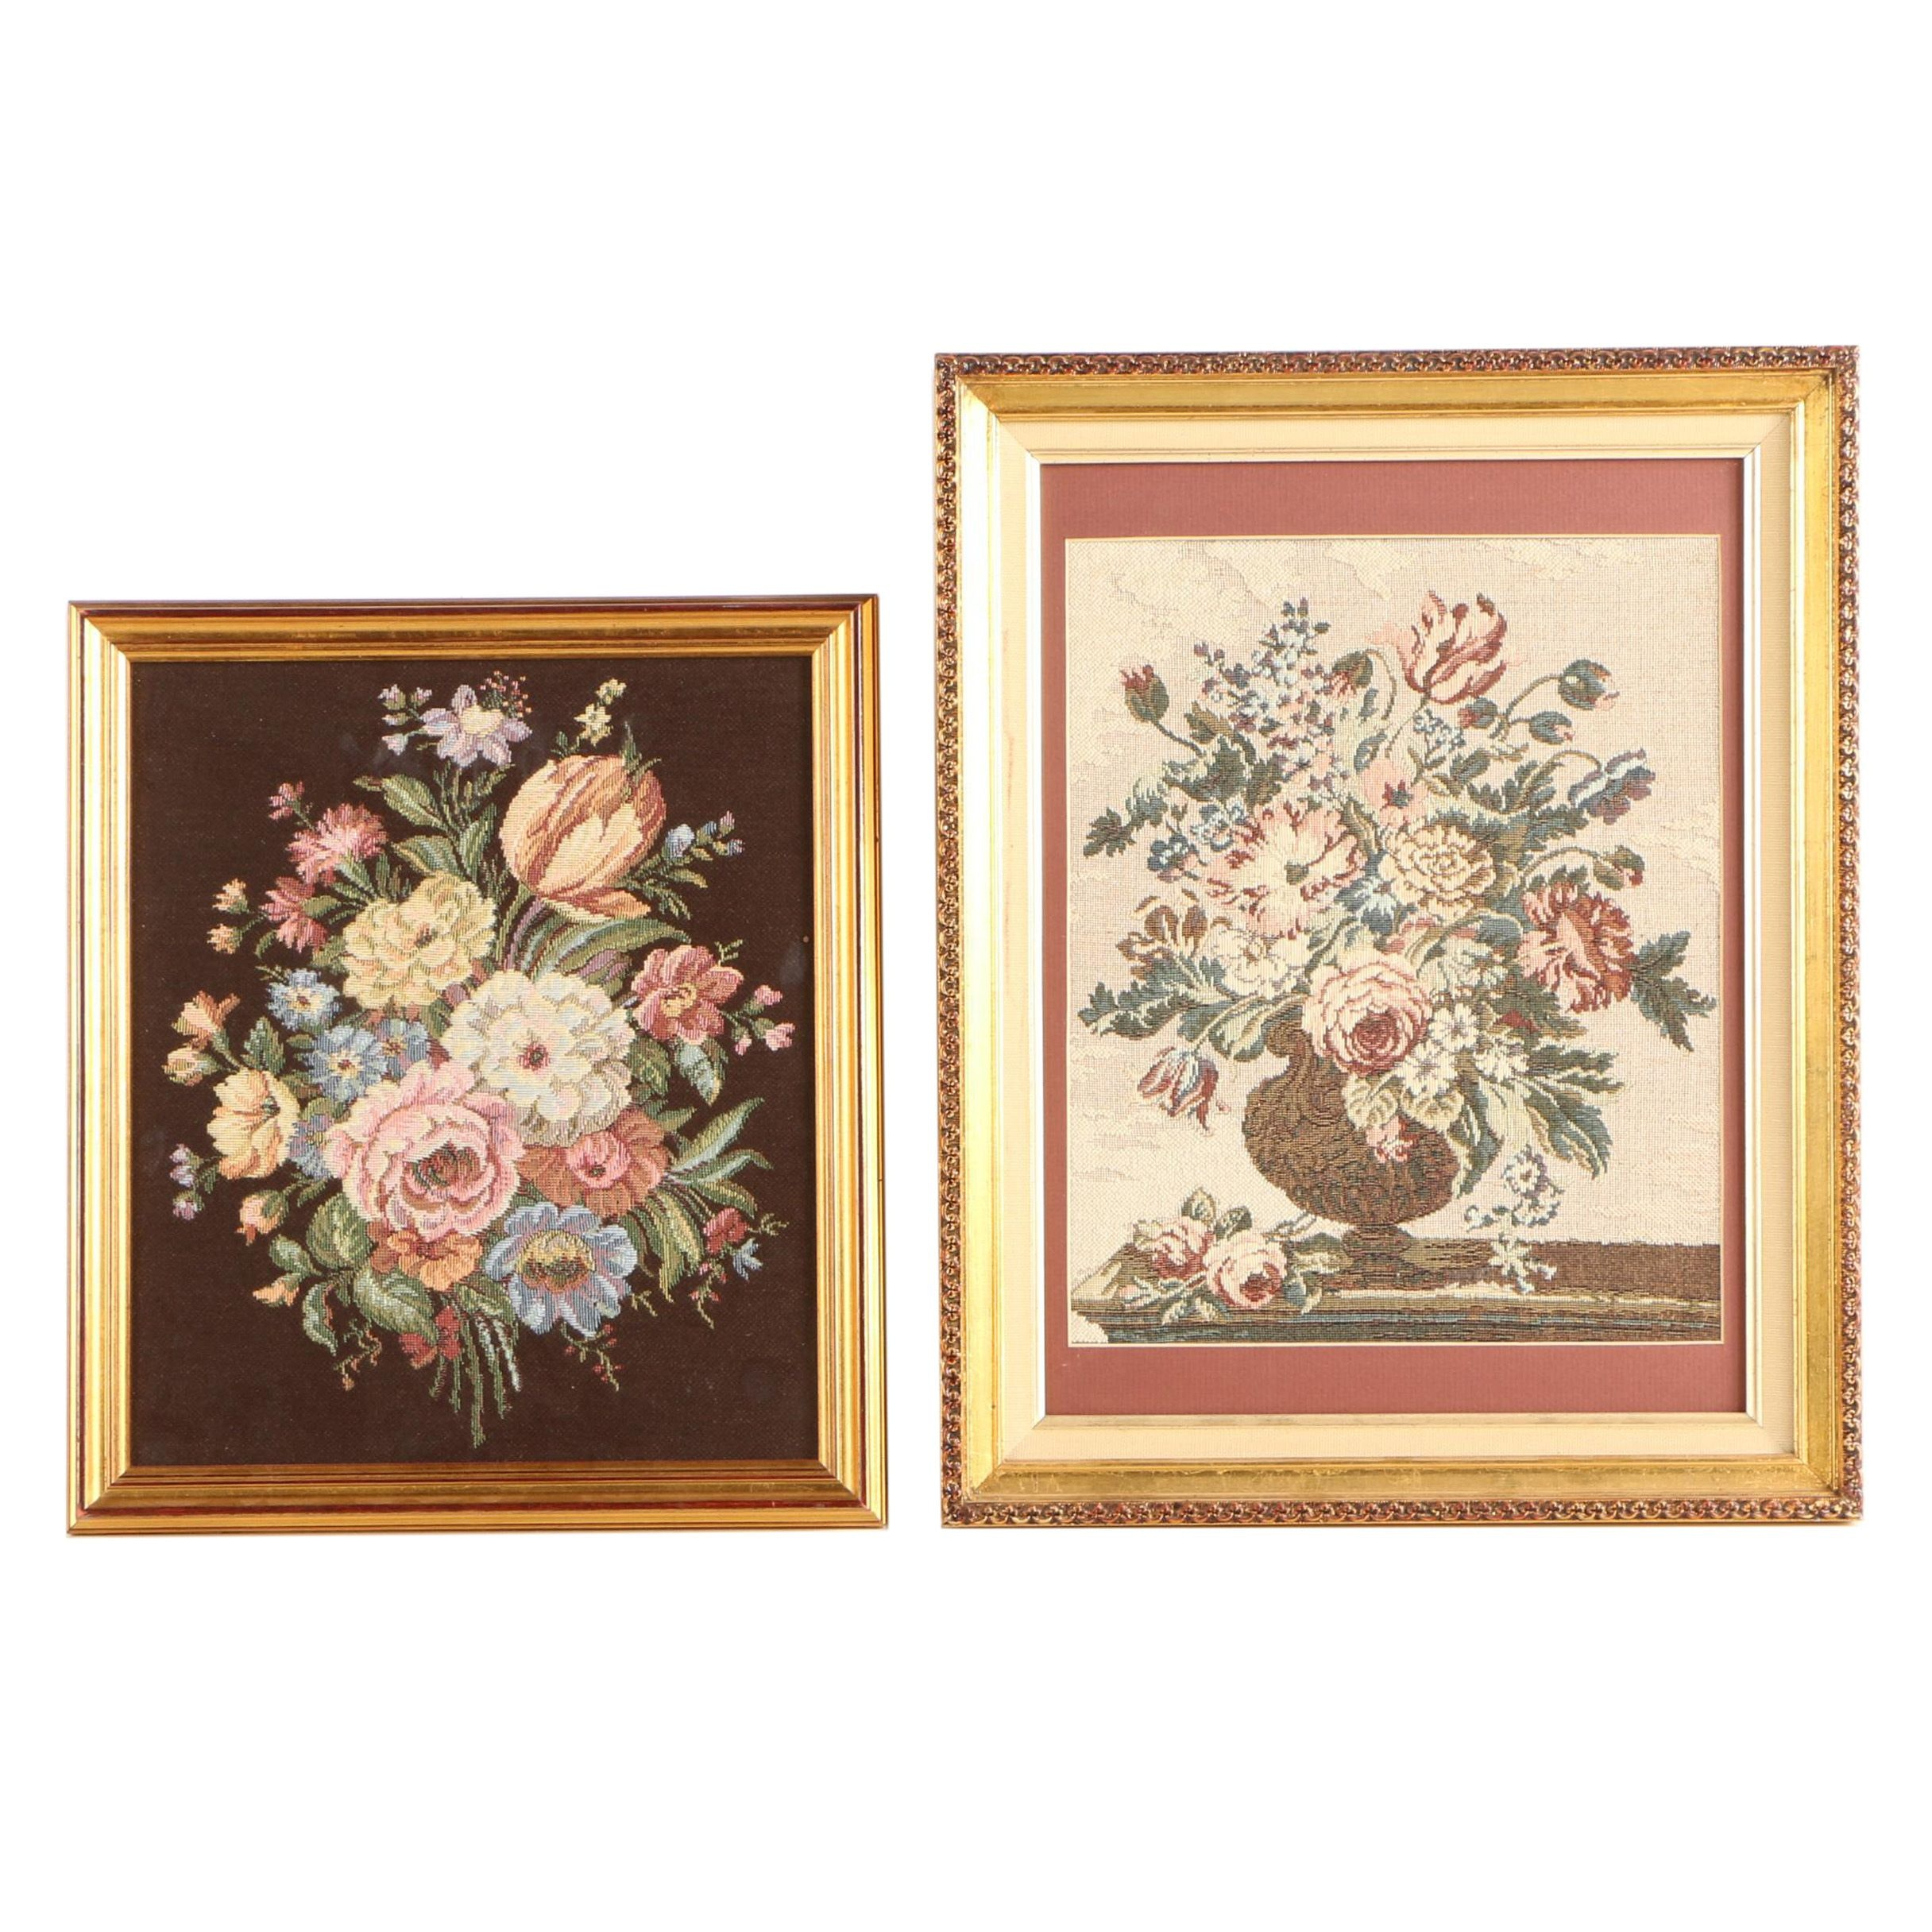 Cross Stitch Textiles of Floral Still Life Compositions